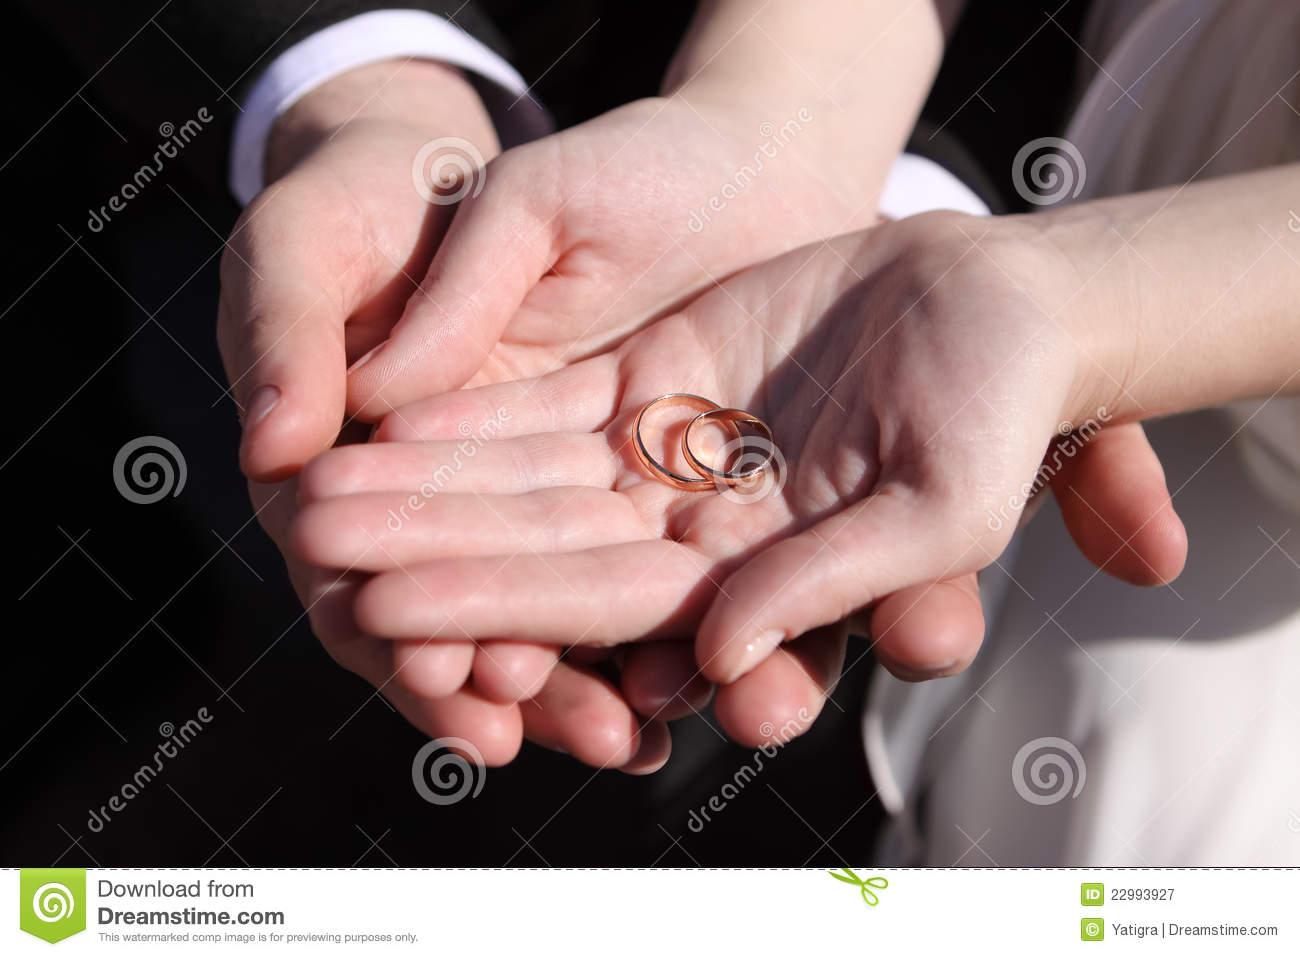 Hands Of The Newlyweds With Wedding Rings Stock Image - Image of ...